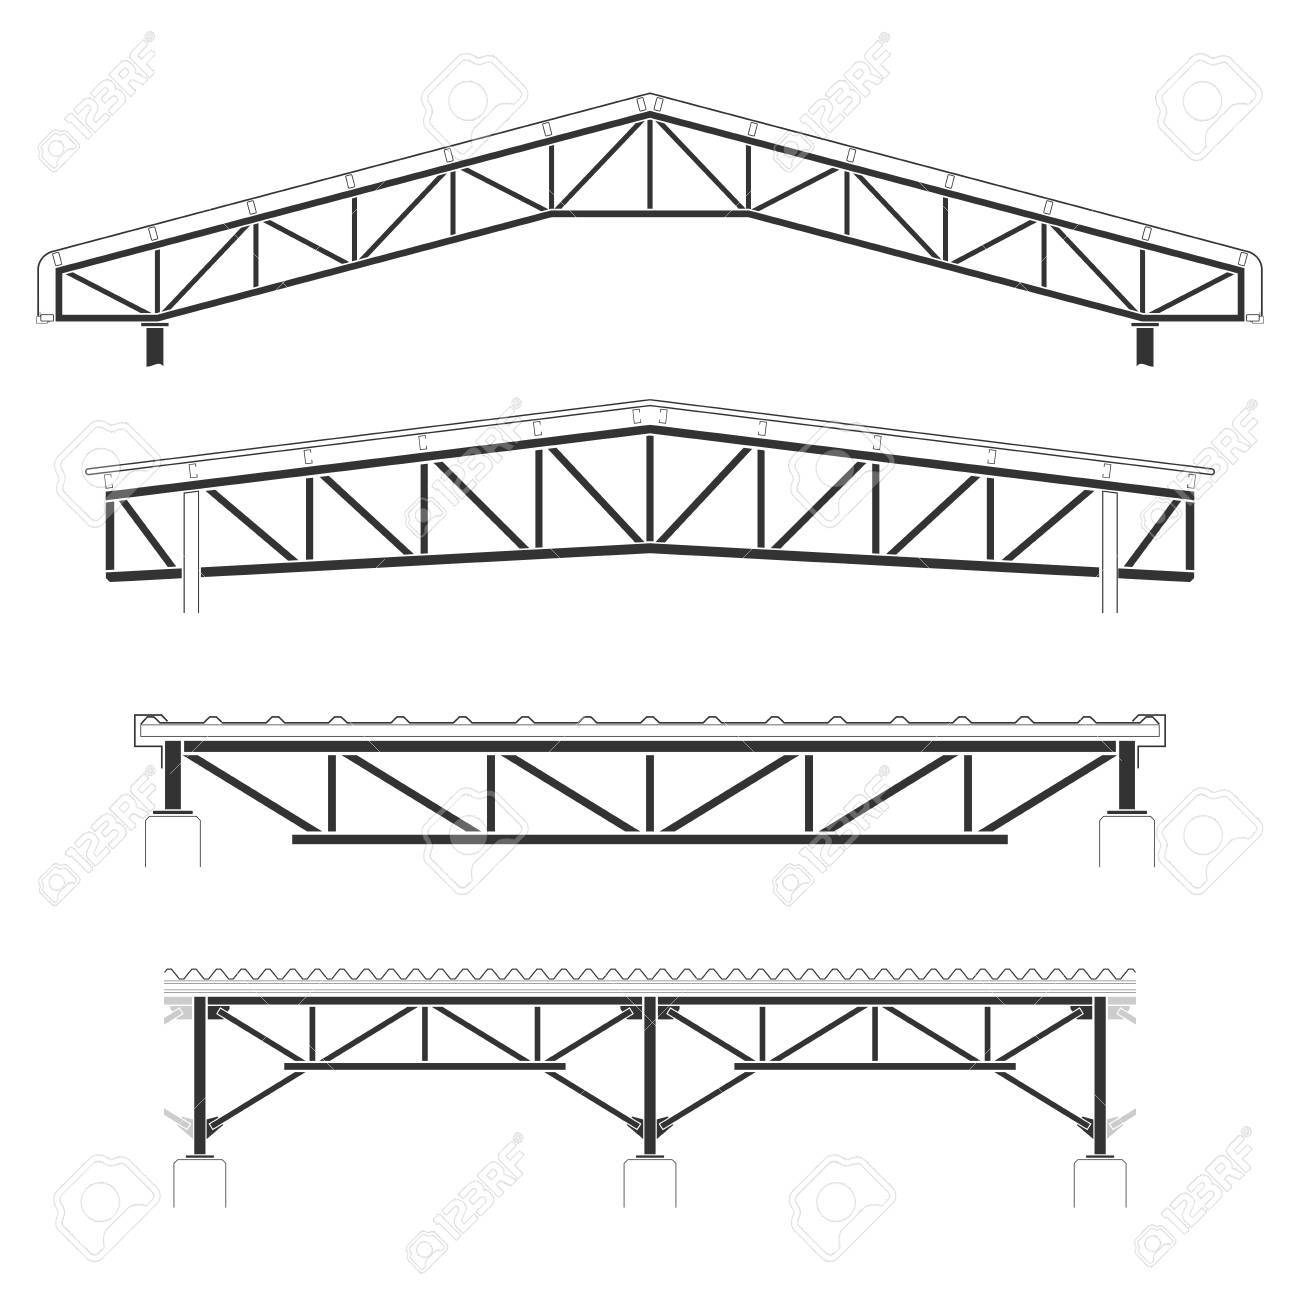 Roofing Building,steel Frame Cover, Roof Truss Set, Vector ...